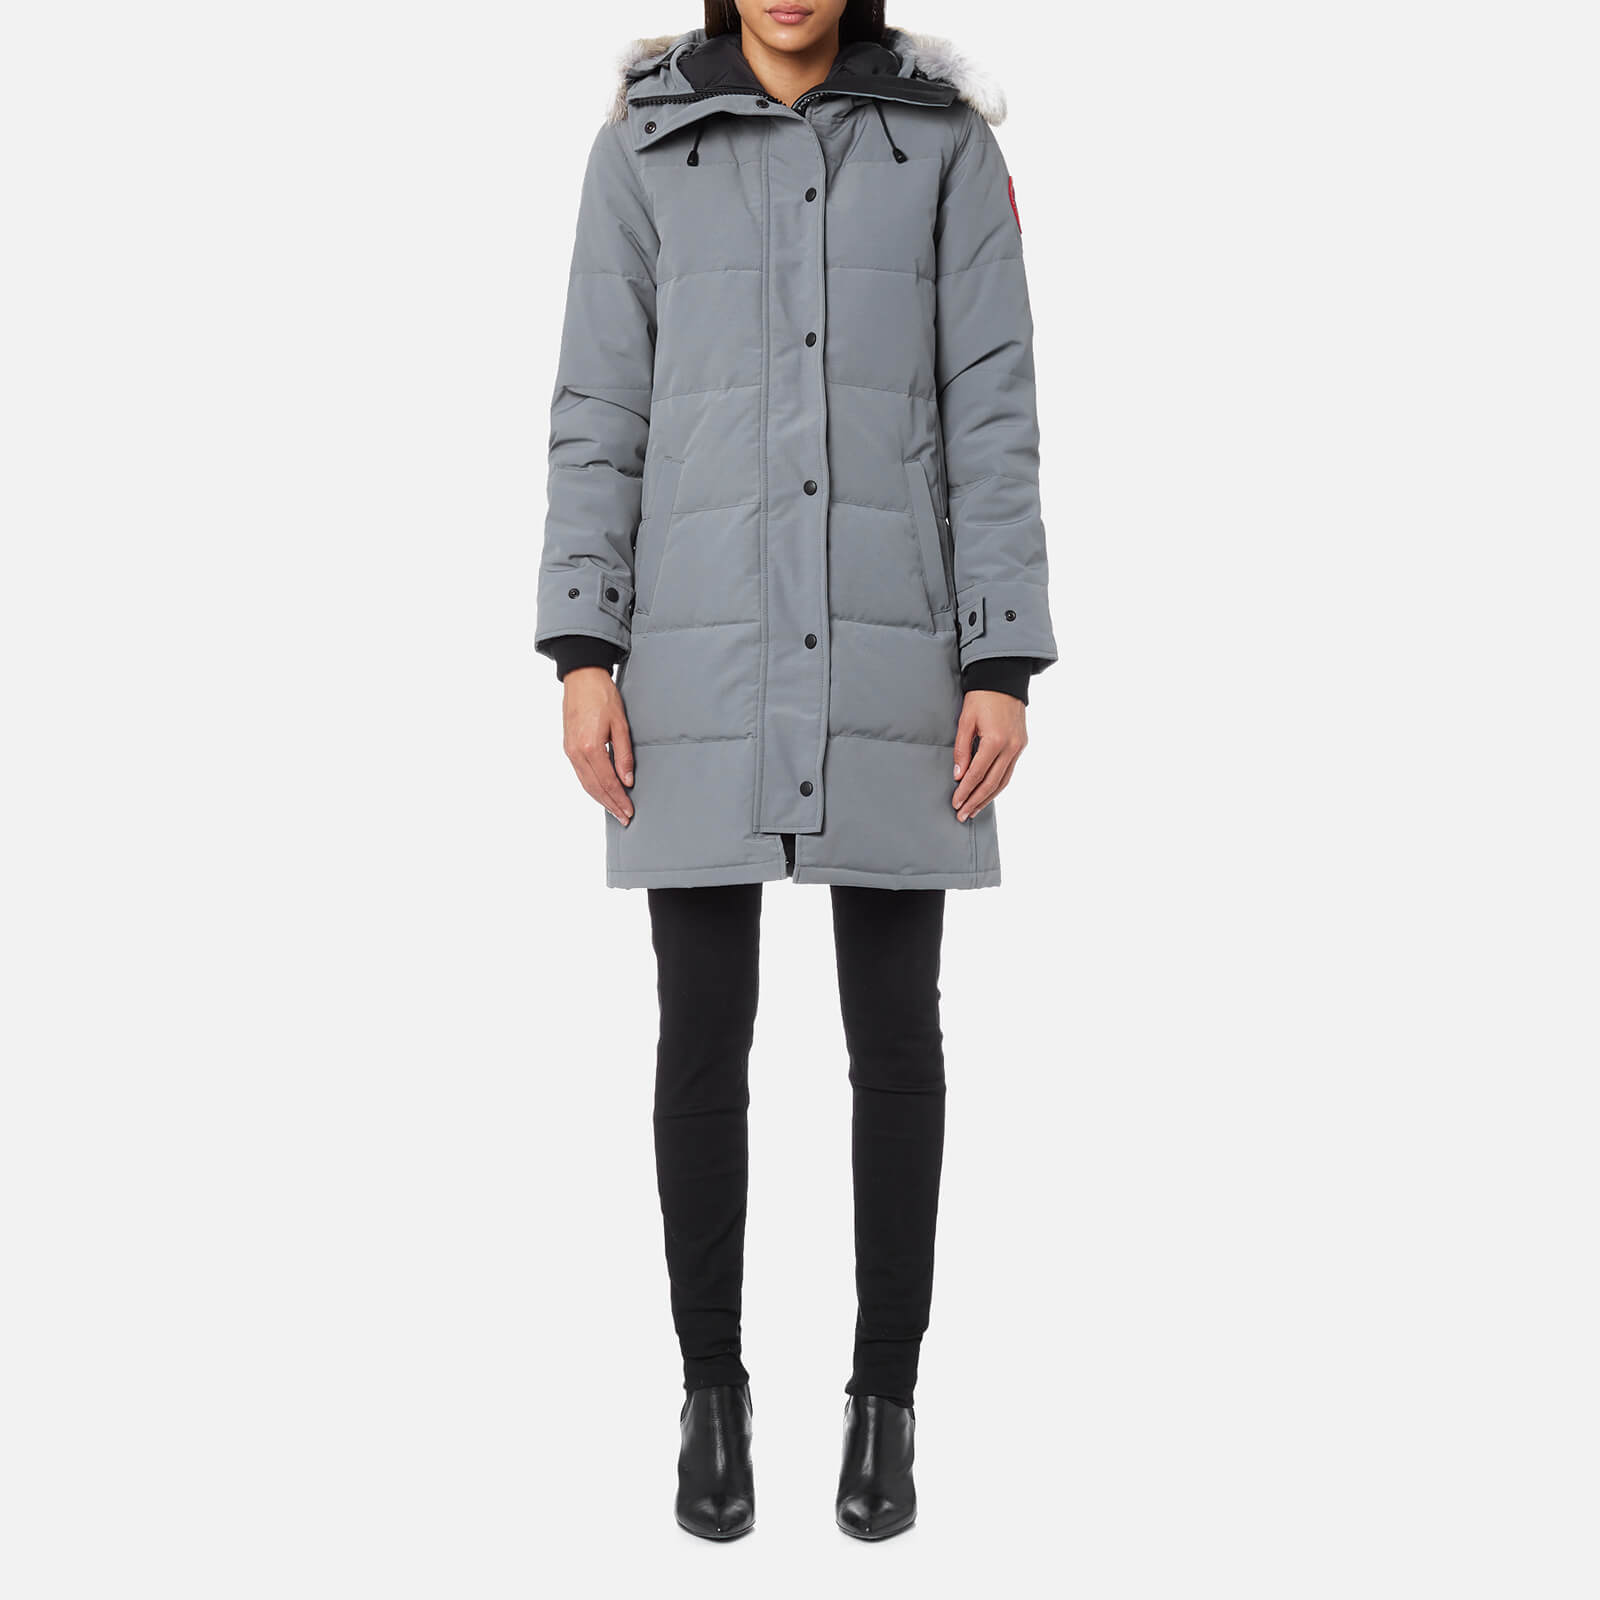 79e153d8a5b4 Canada Goose Women s Shelburne Parka - Mid Grey - Free UK Delivery over £50